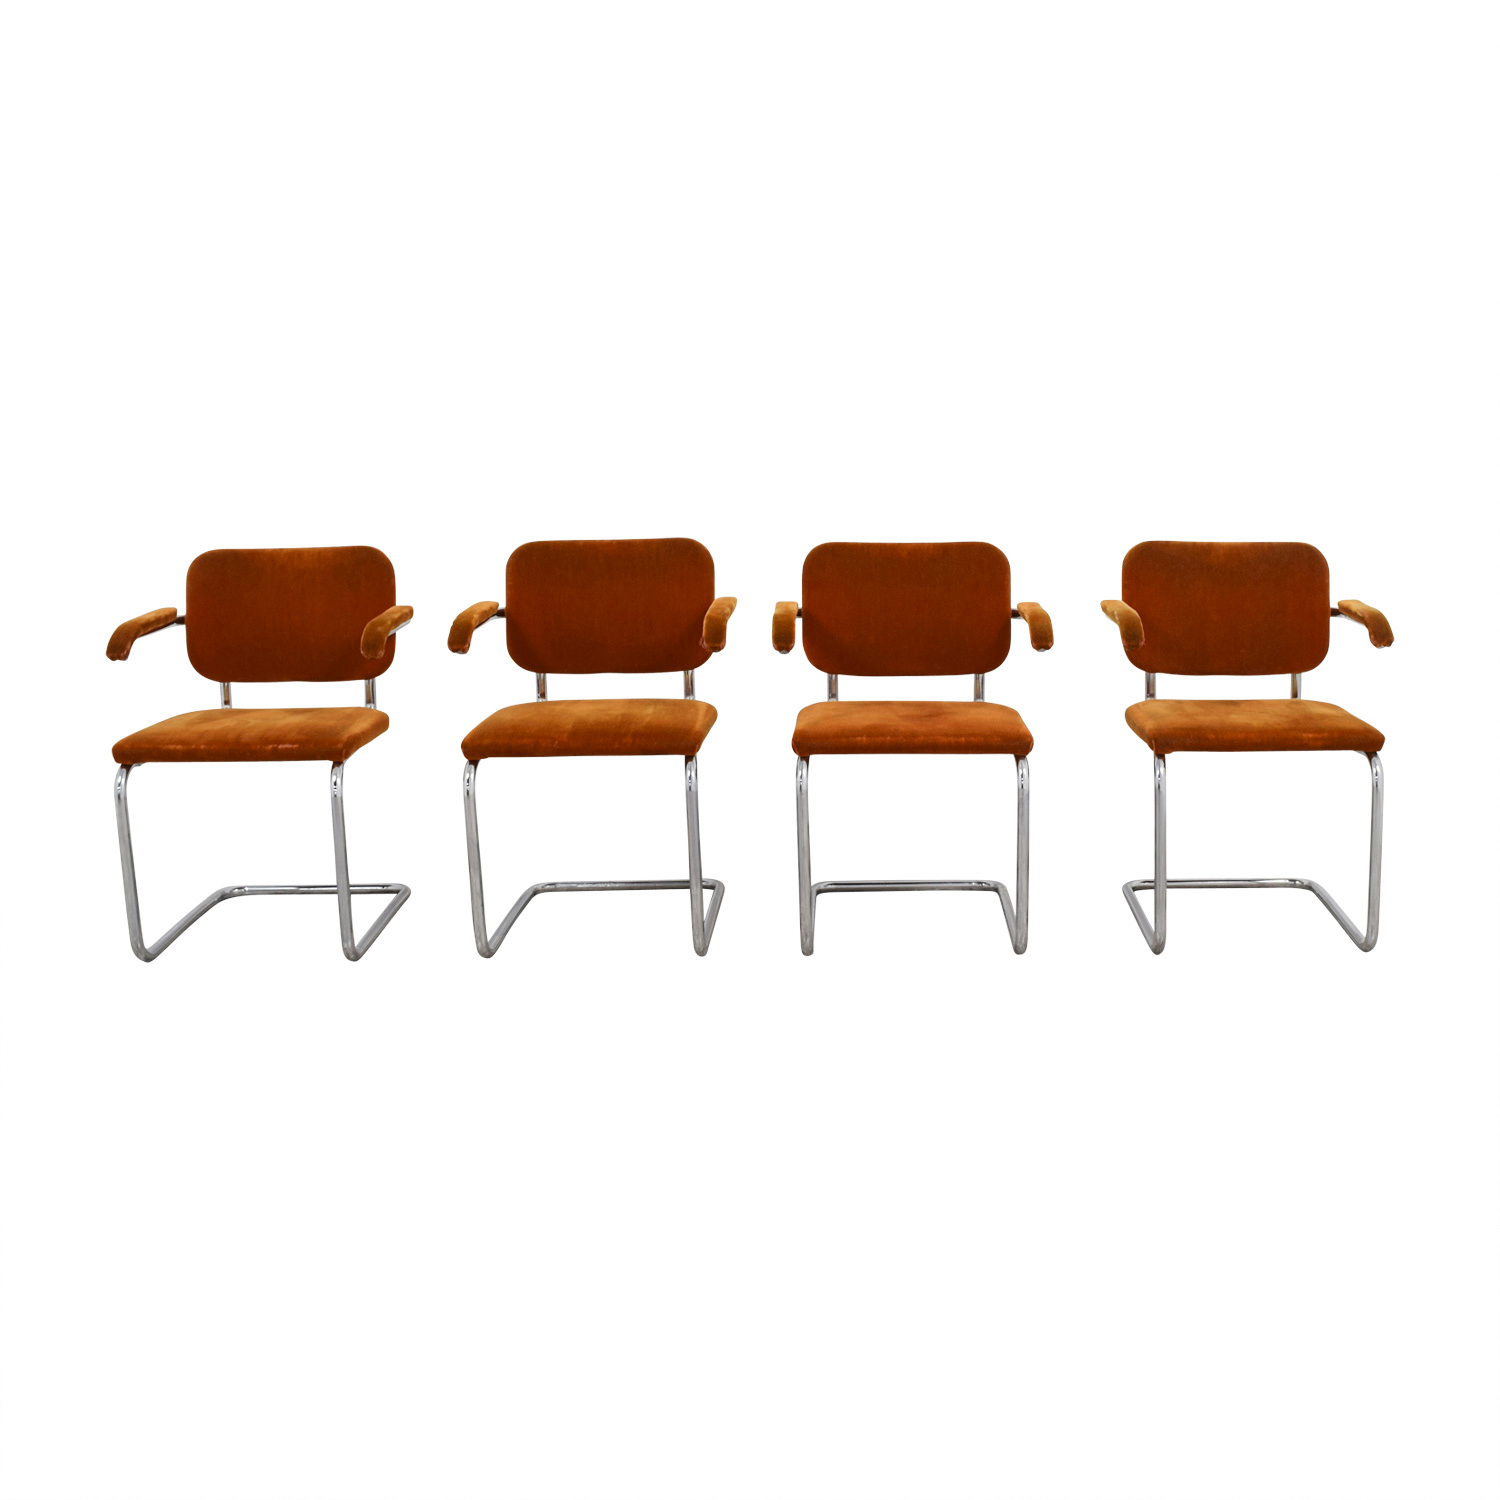 Knoll Knoll M. Breuer Cesca Chairs second hand